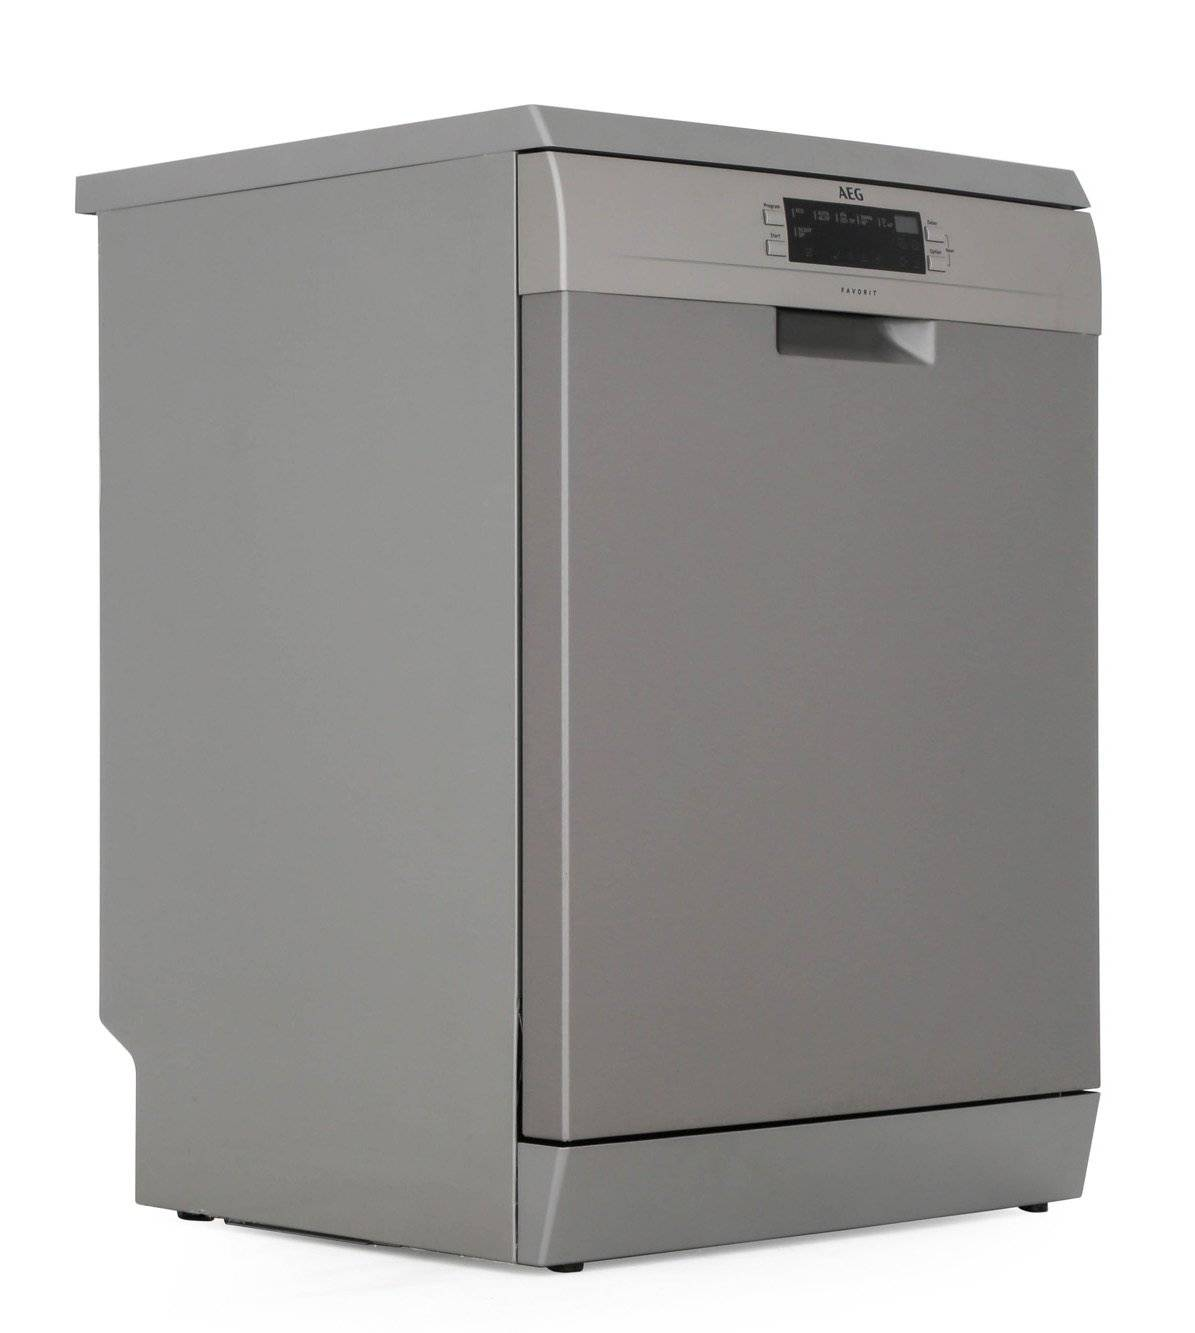 AEG Dishwasher with AirDry Technology - Stainless Steel - E Rated - FFE62620PM